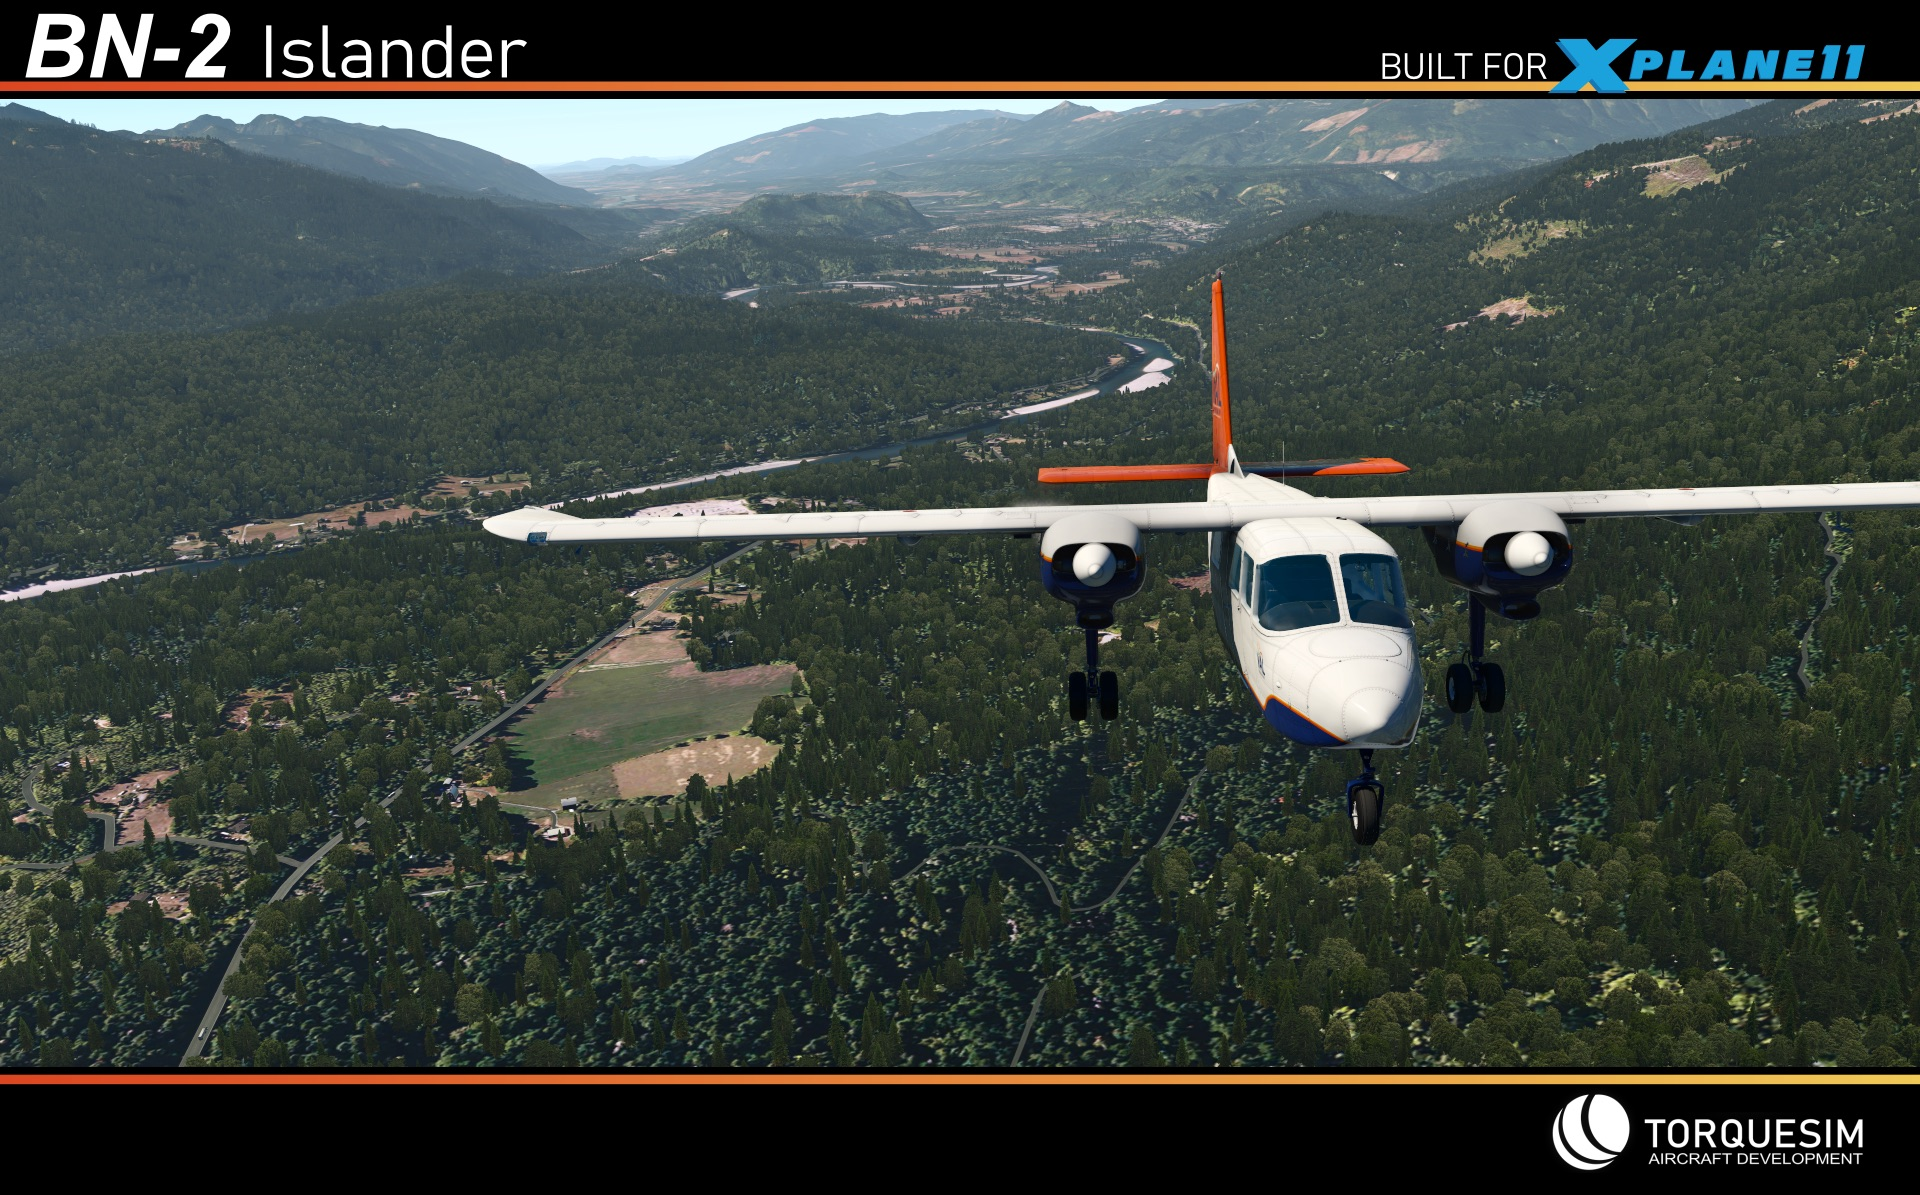 BN-2 Islander Development Update 2